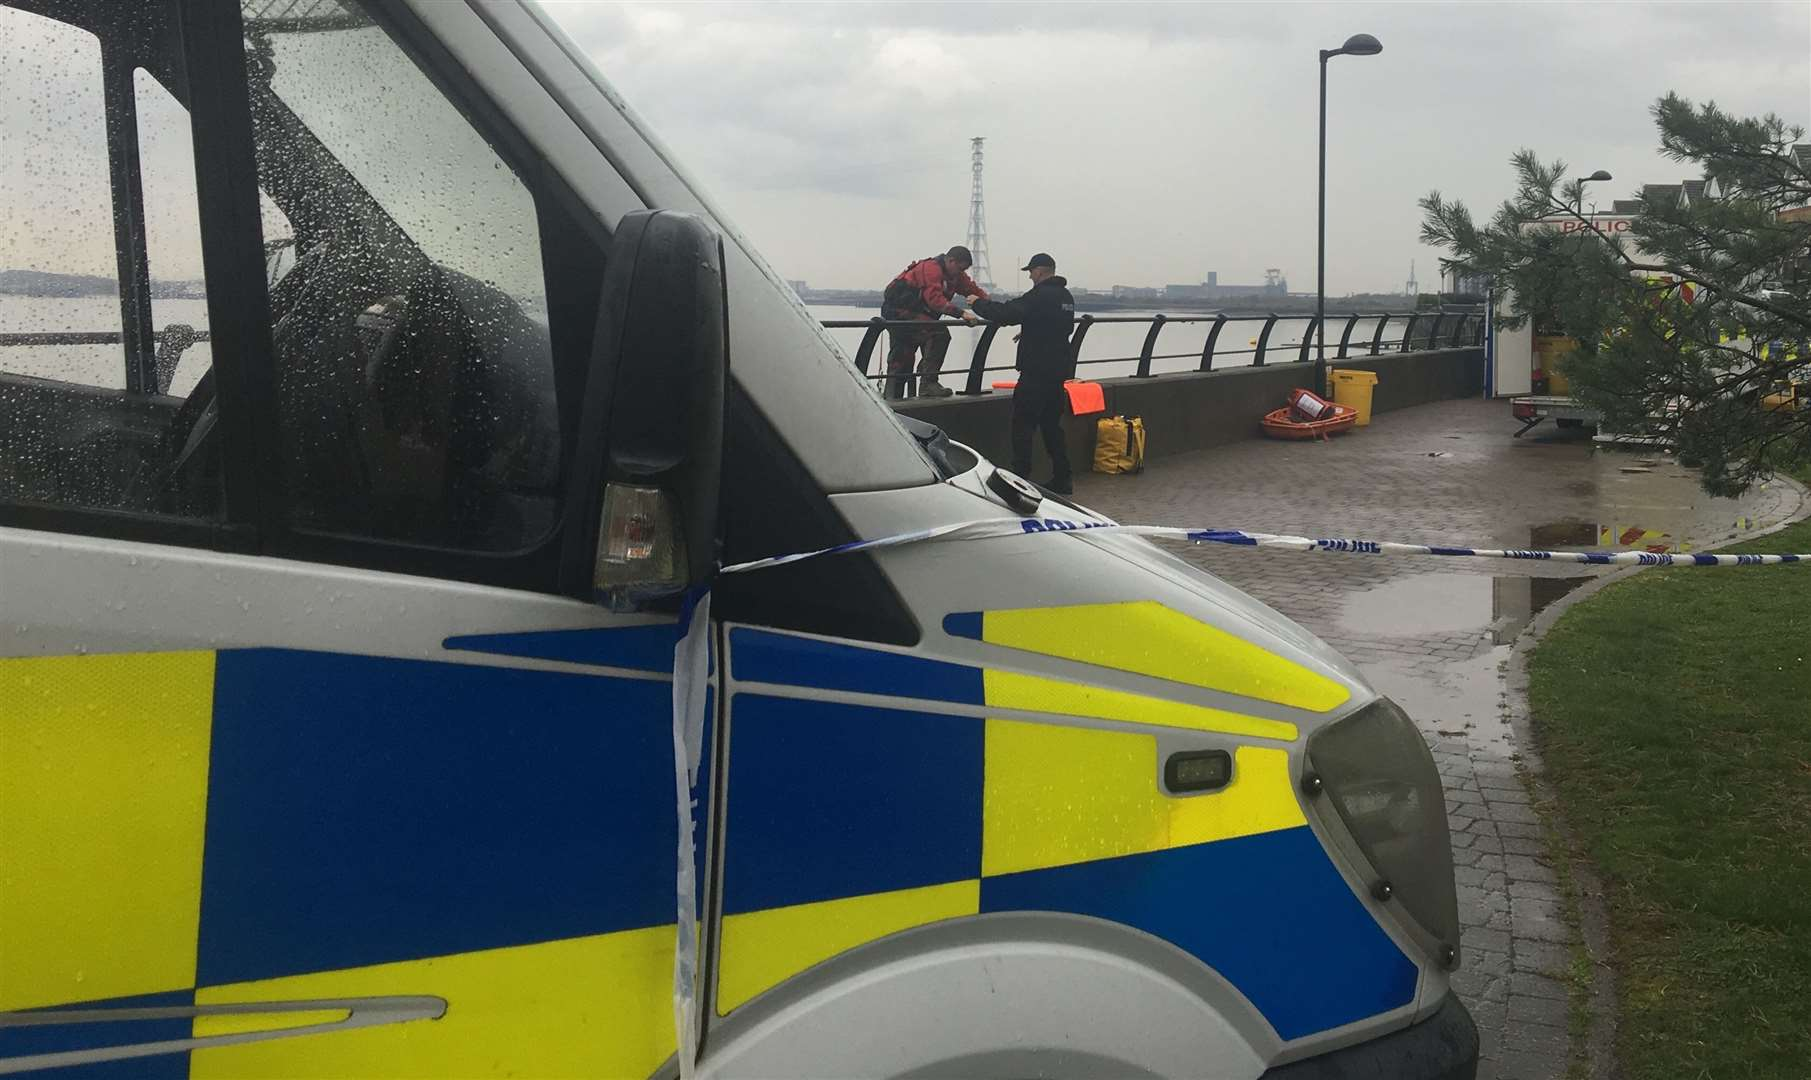 Police divers were seen searching the Thames by North Star Boulevard off Station Road at the time of Sarah Wellgreen's disappearance